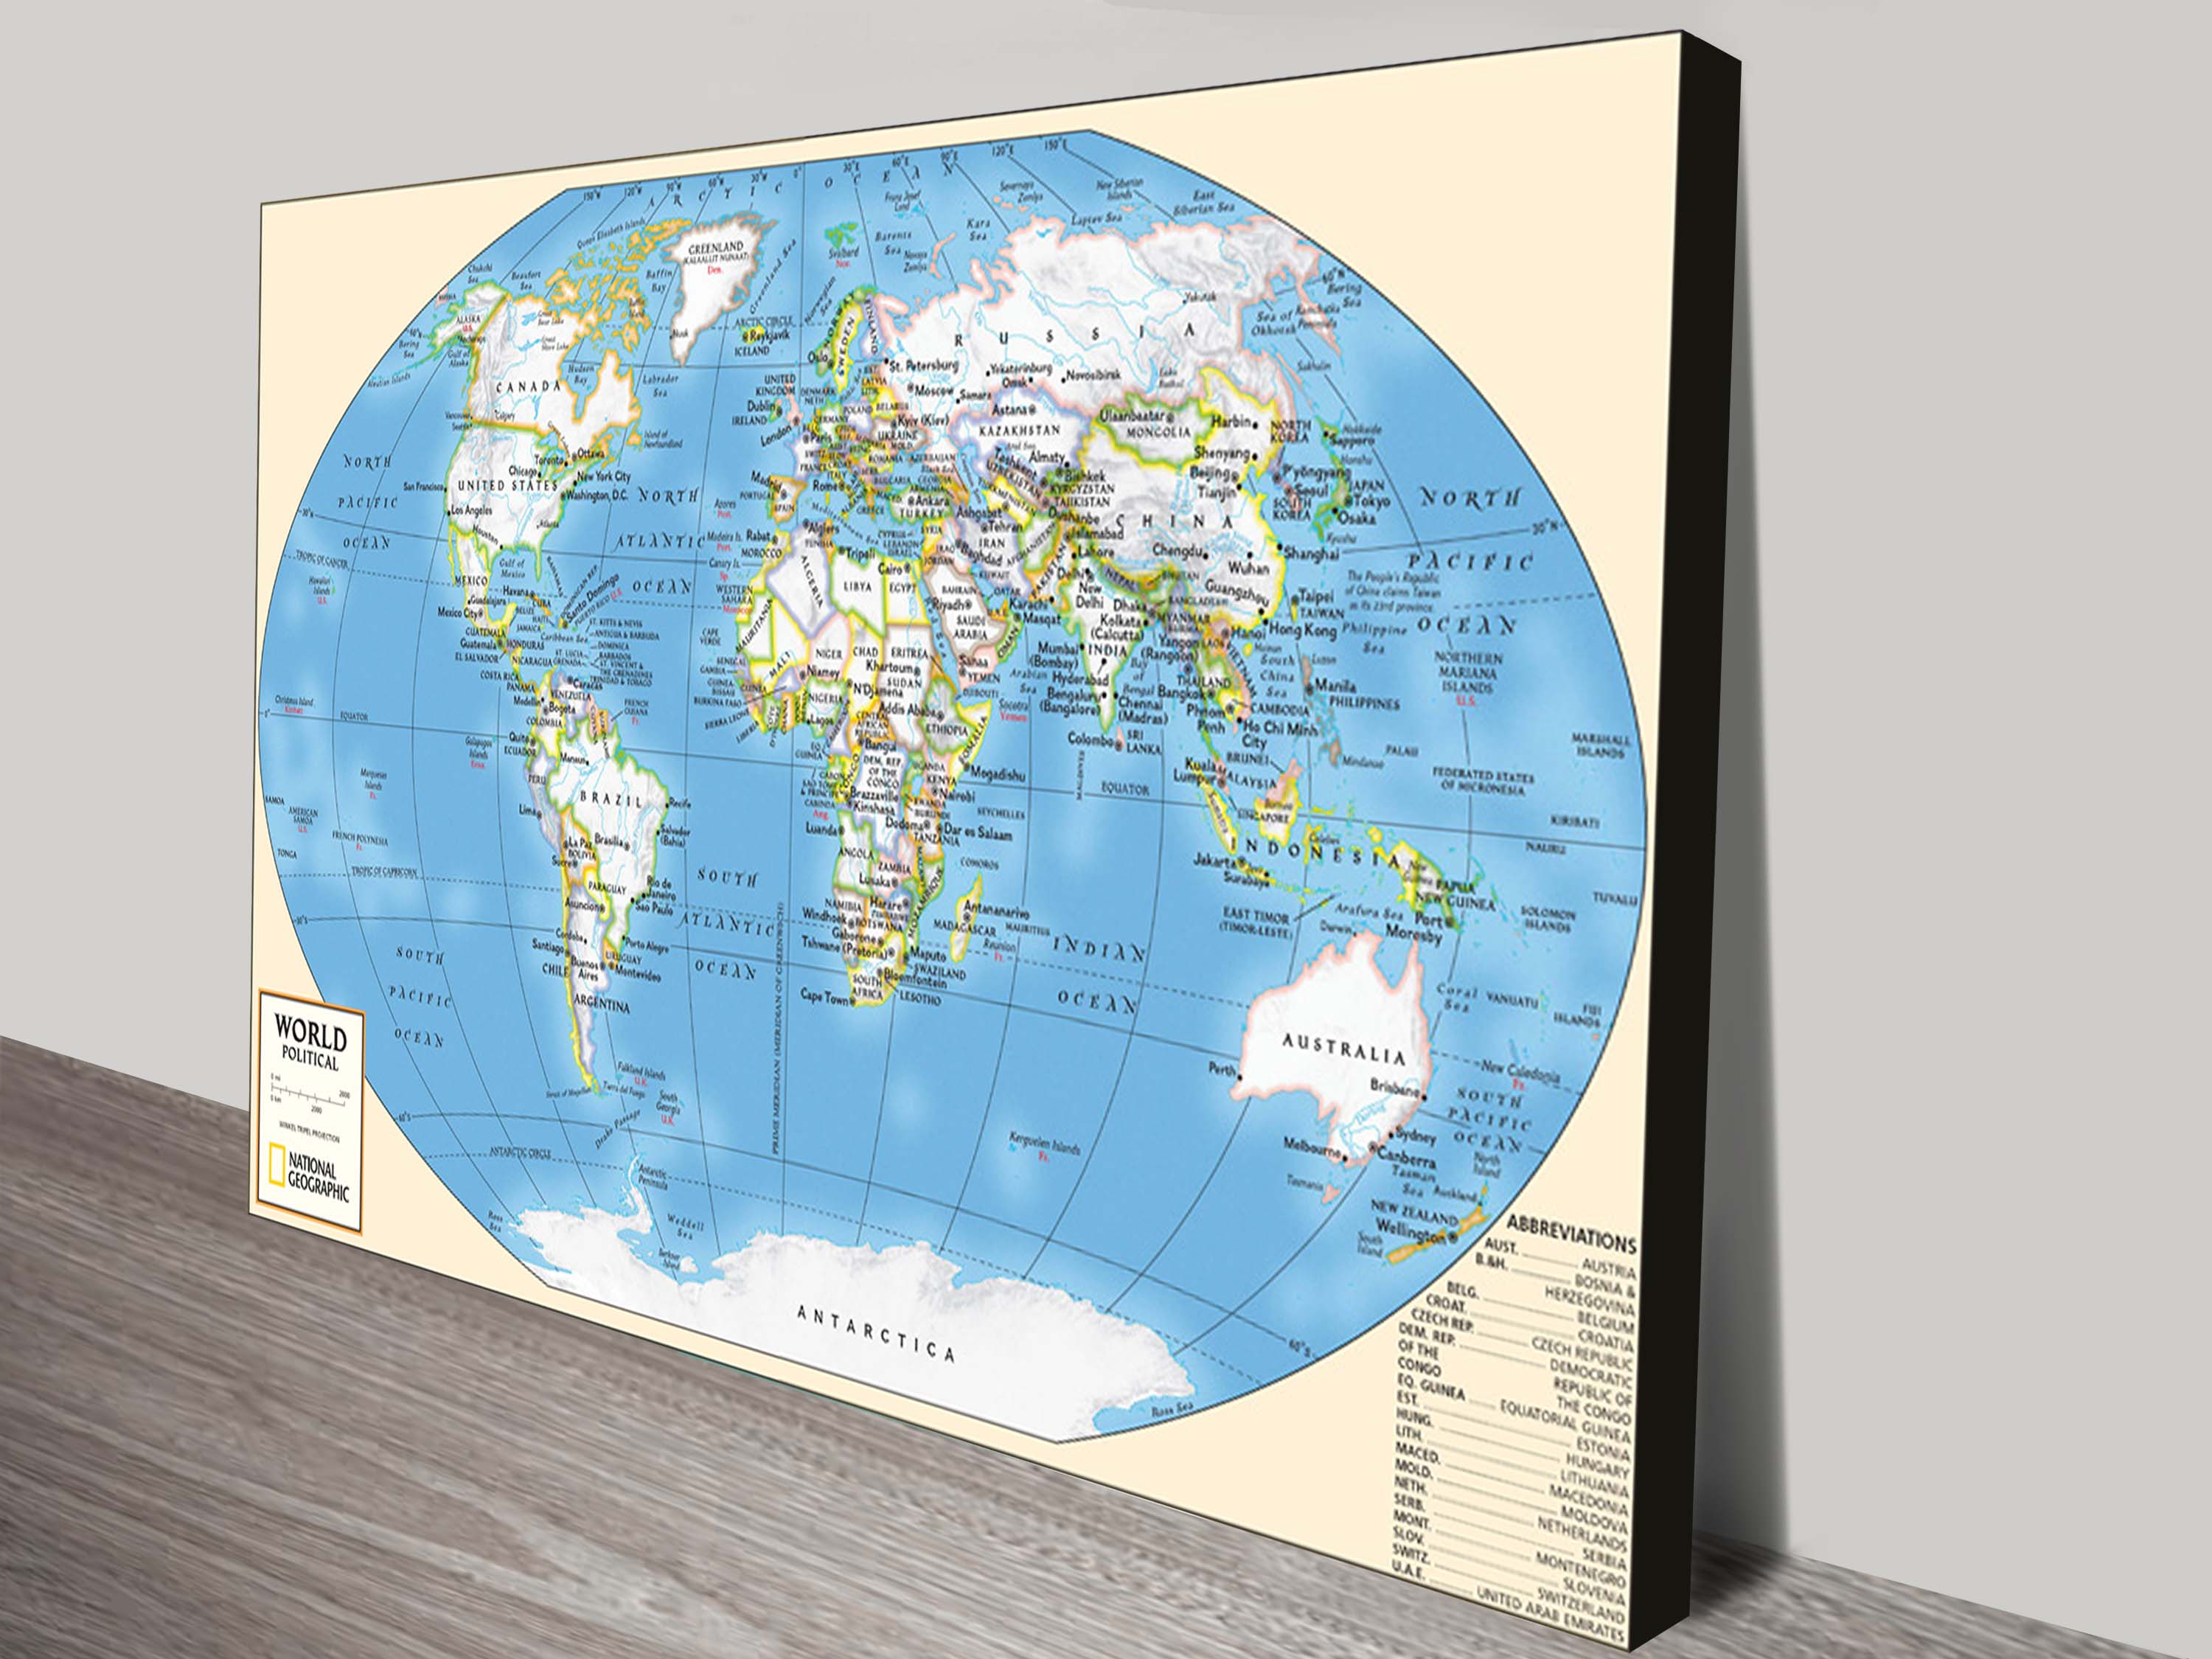 Buy world map canvas wall art picture sydney australia gumiabroncs Image collections